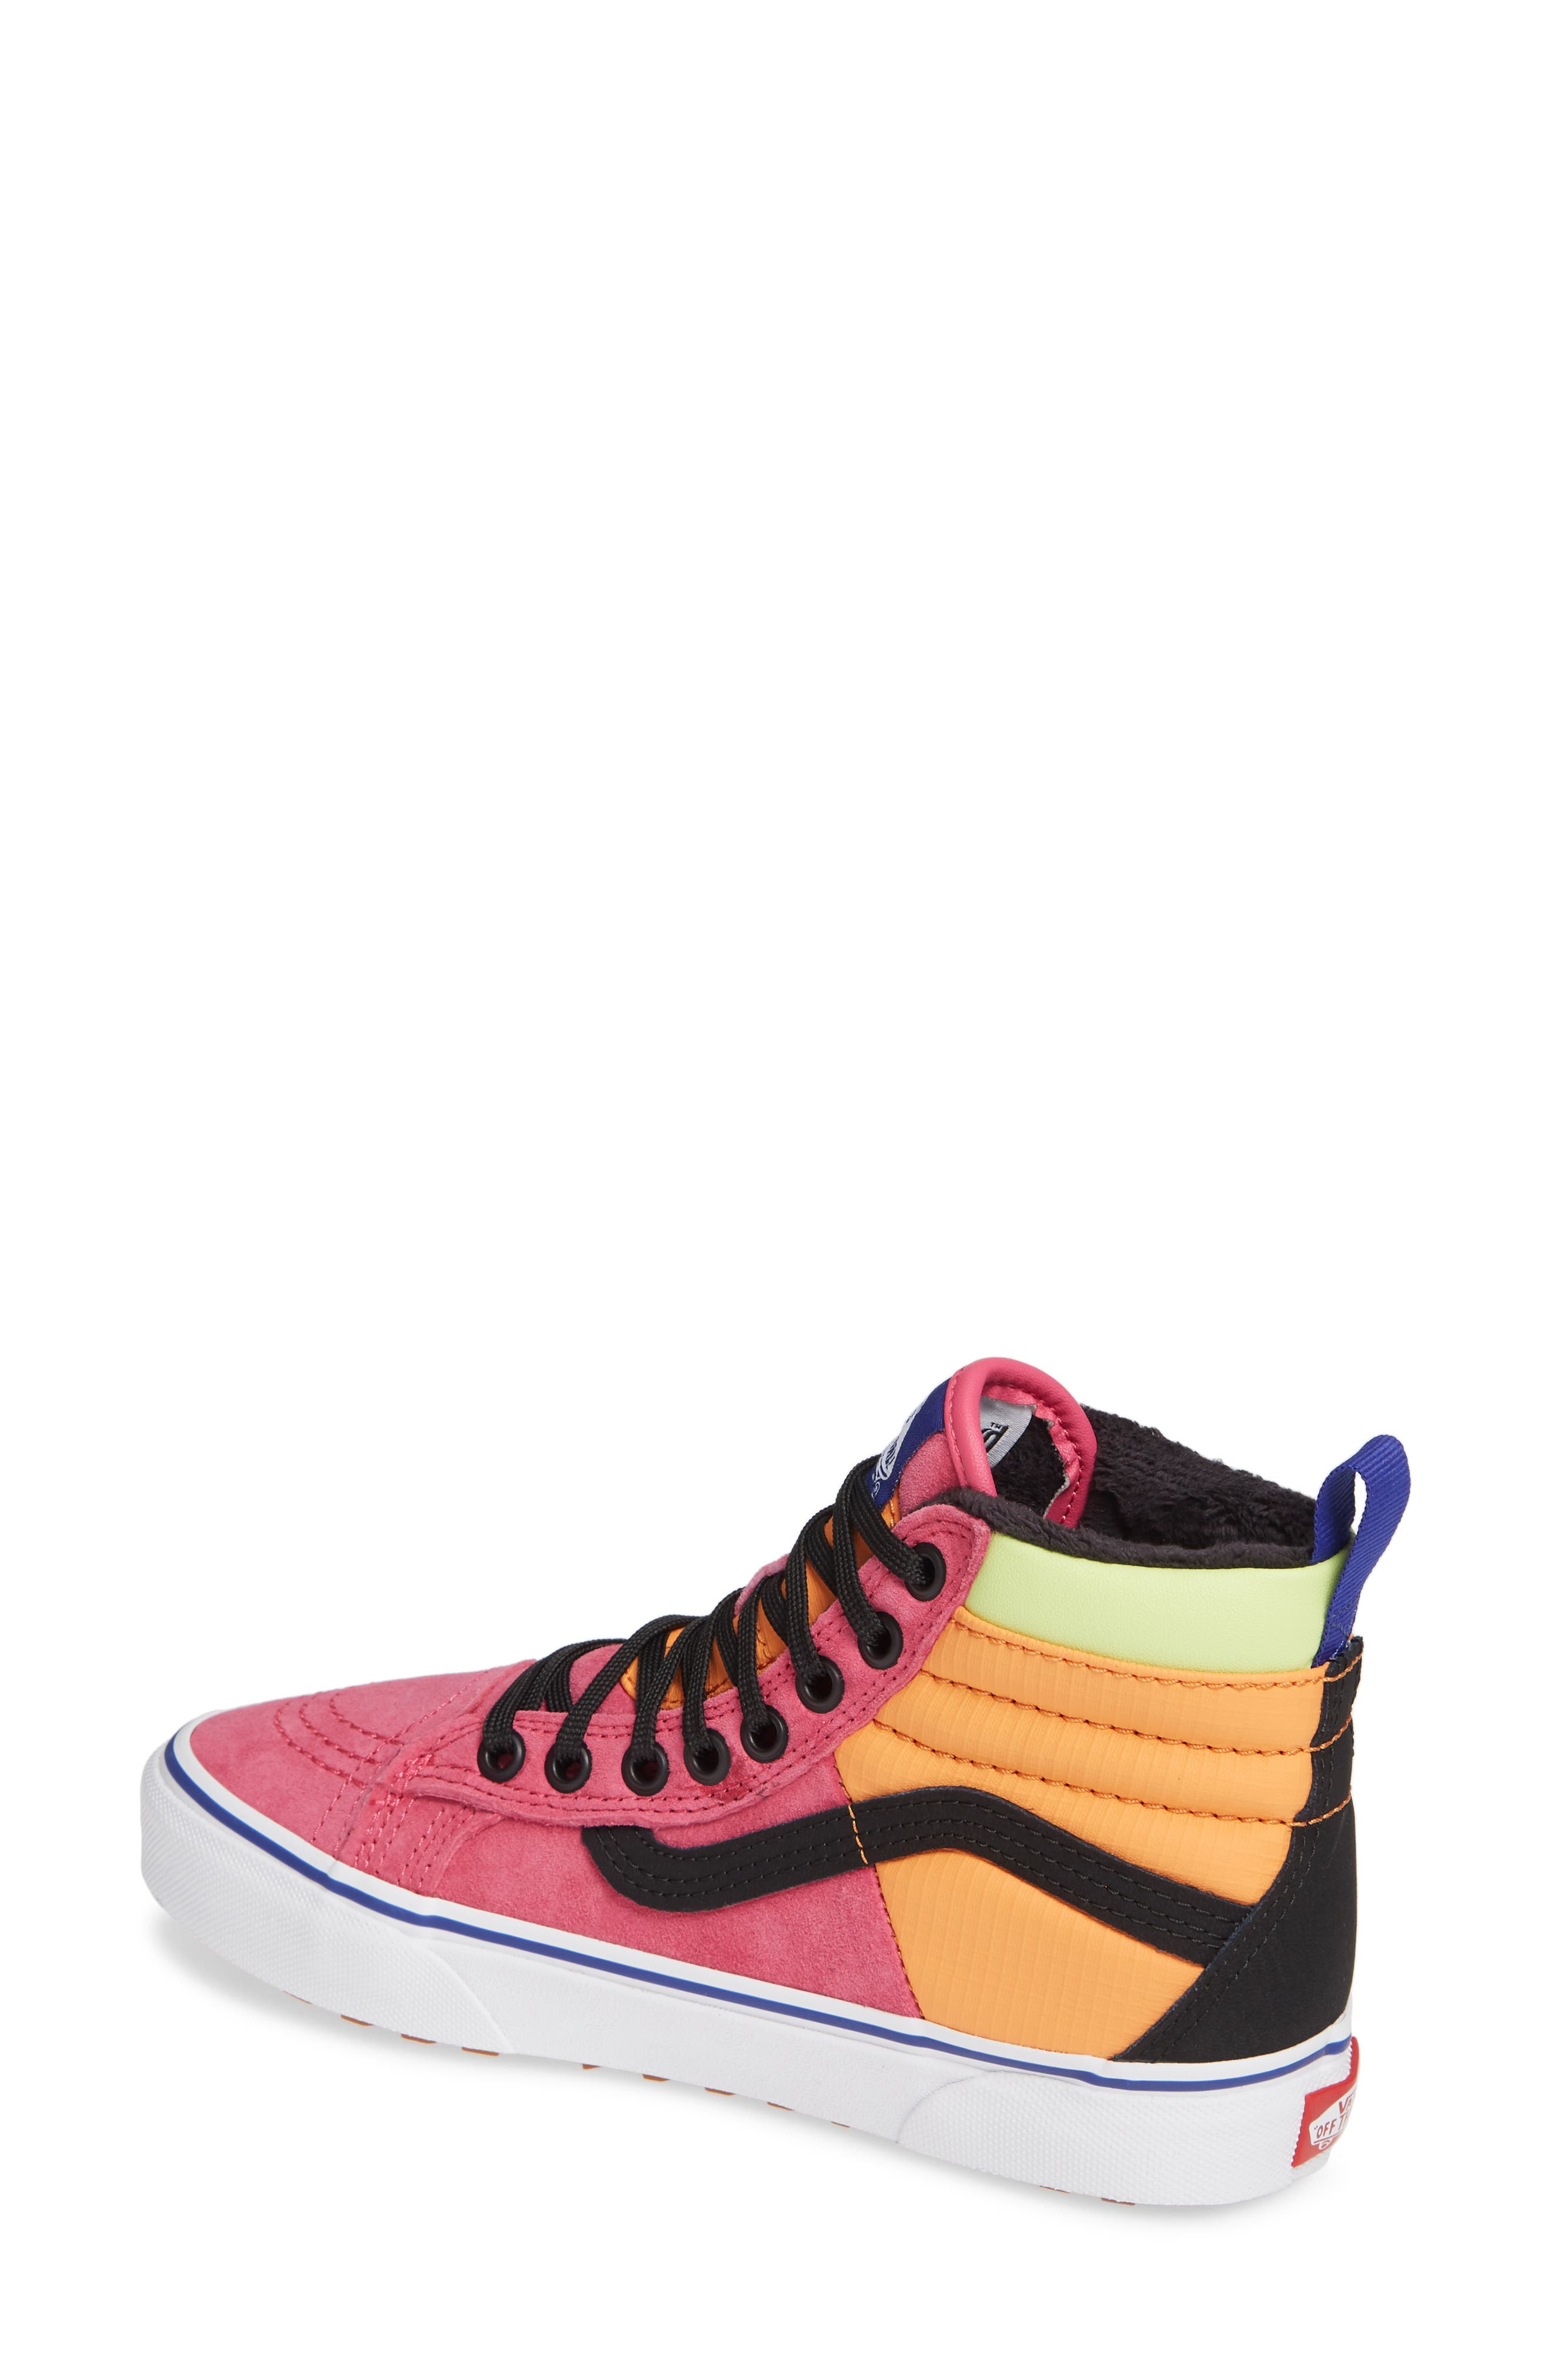 VANS, Sk8-Hi 46 MTE DX Sneaker, Alternate thumbnail 2, color, PINK YARROW/ TANGERINE/ BLACK